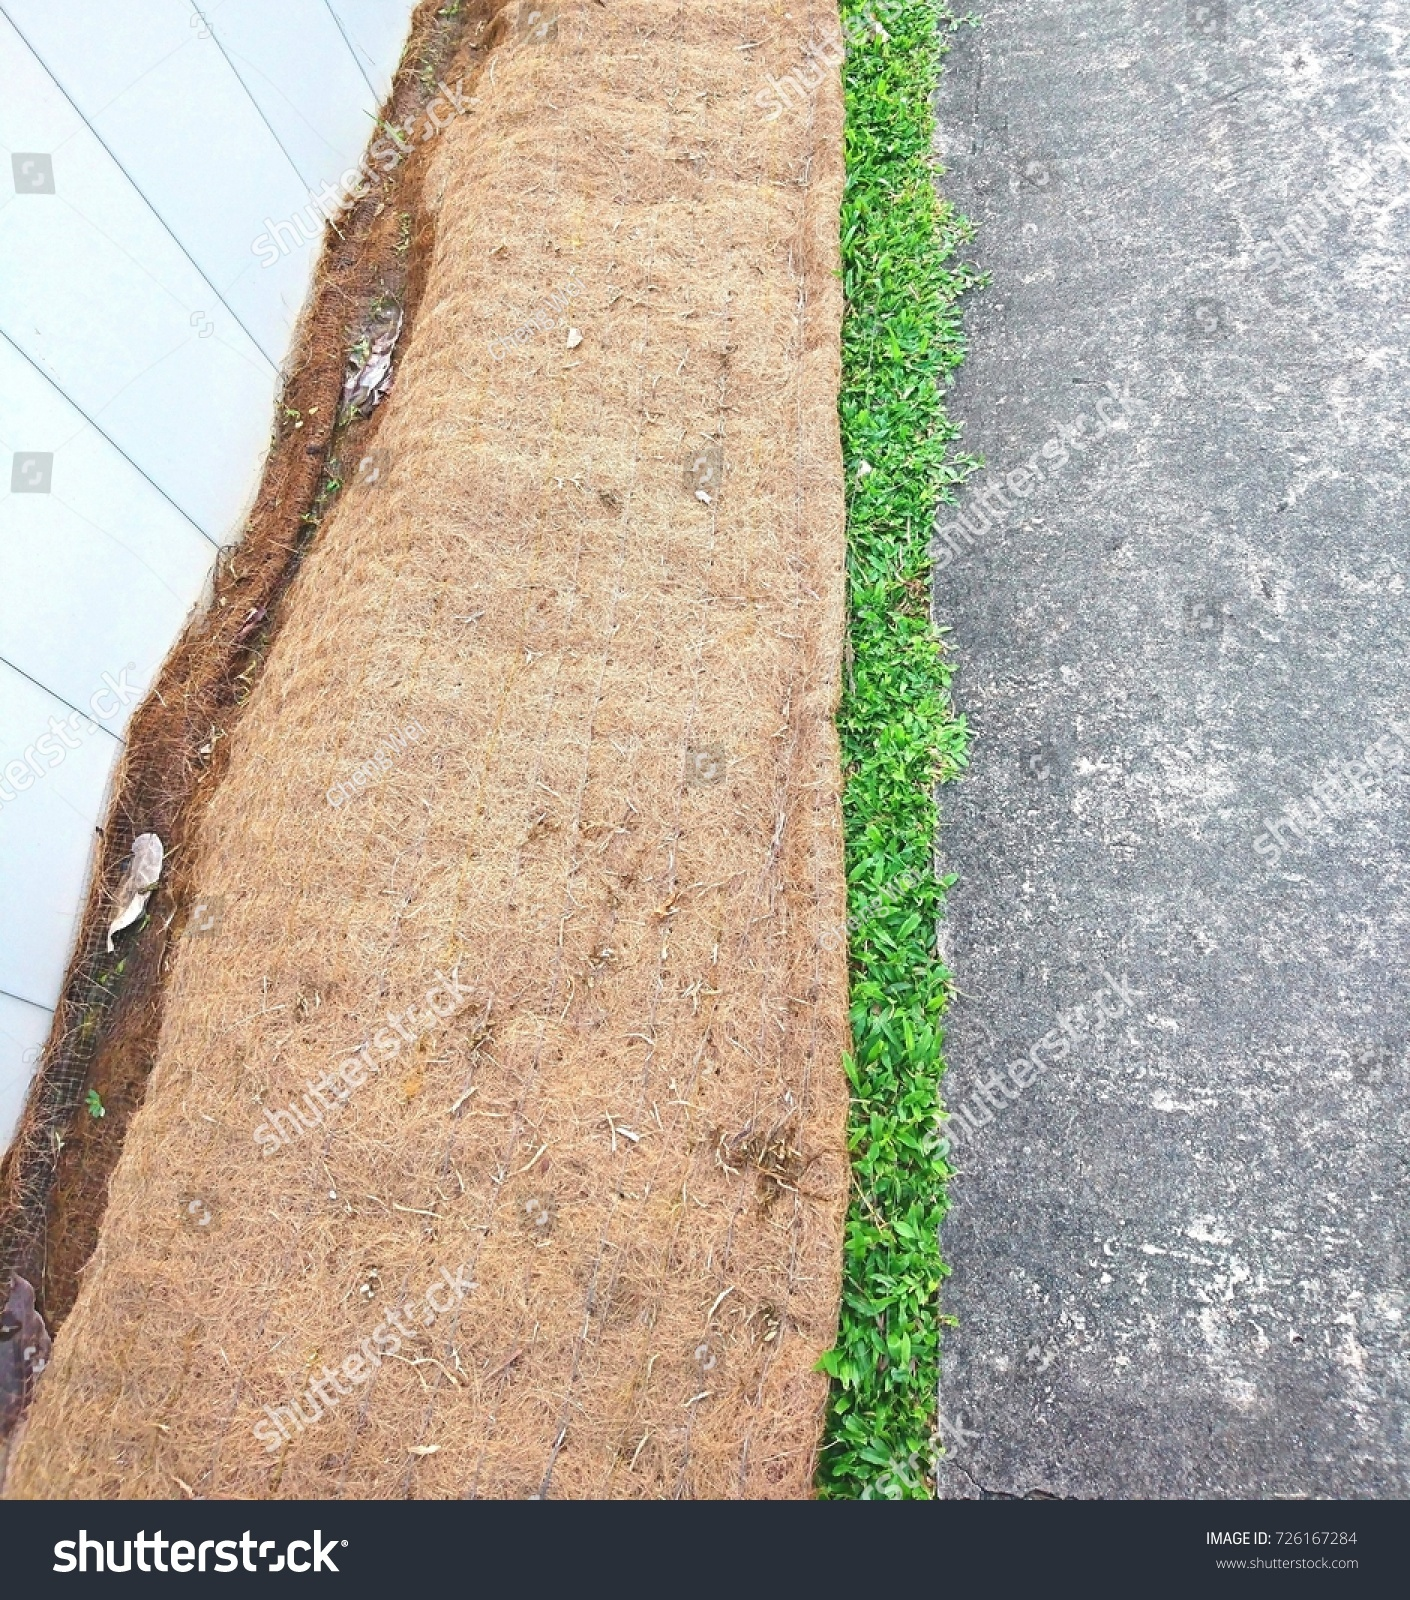 biodegradable soil erosion control blanket placed stock photo (edit